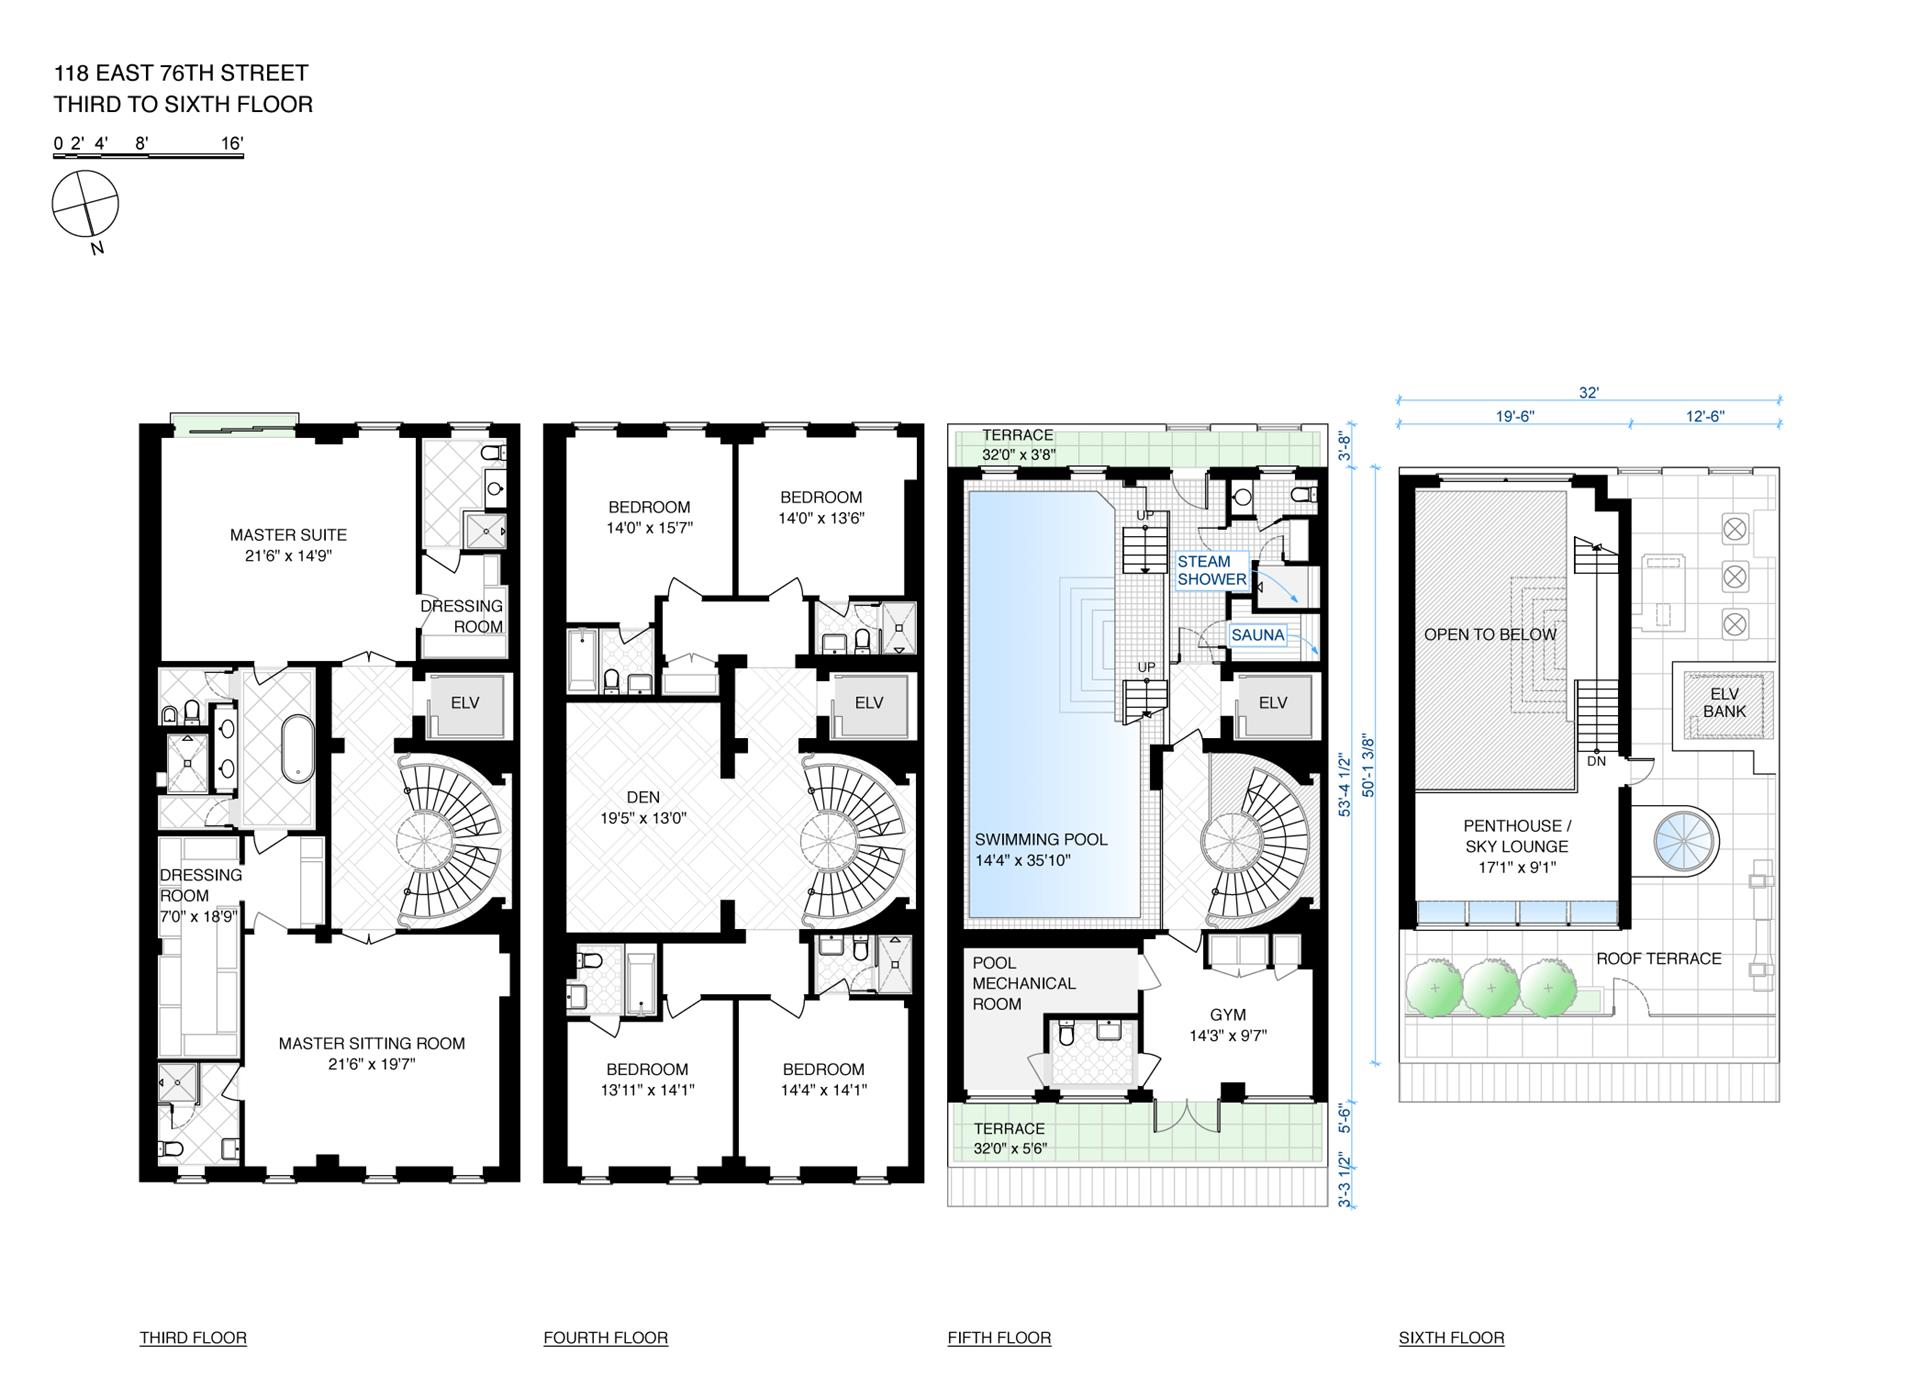 Floor plan of 118 East 76th St - Upper East Side, New York